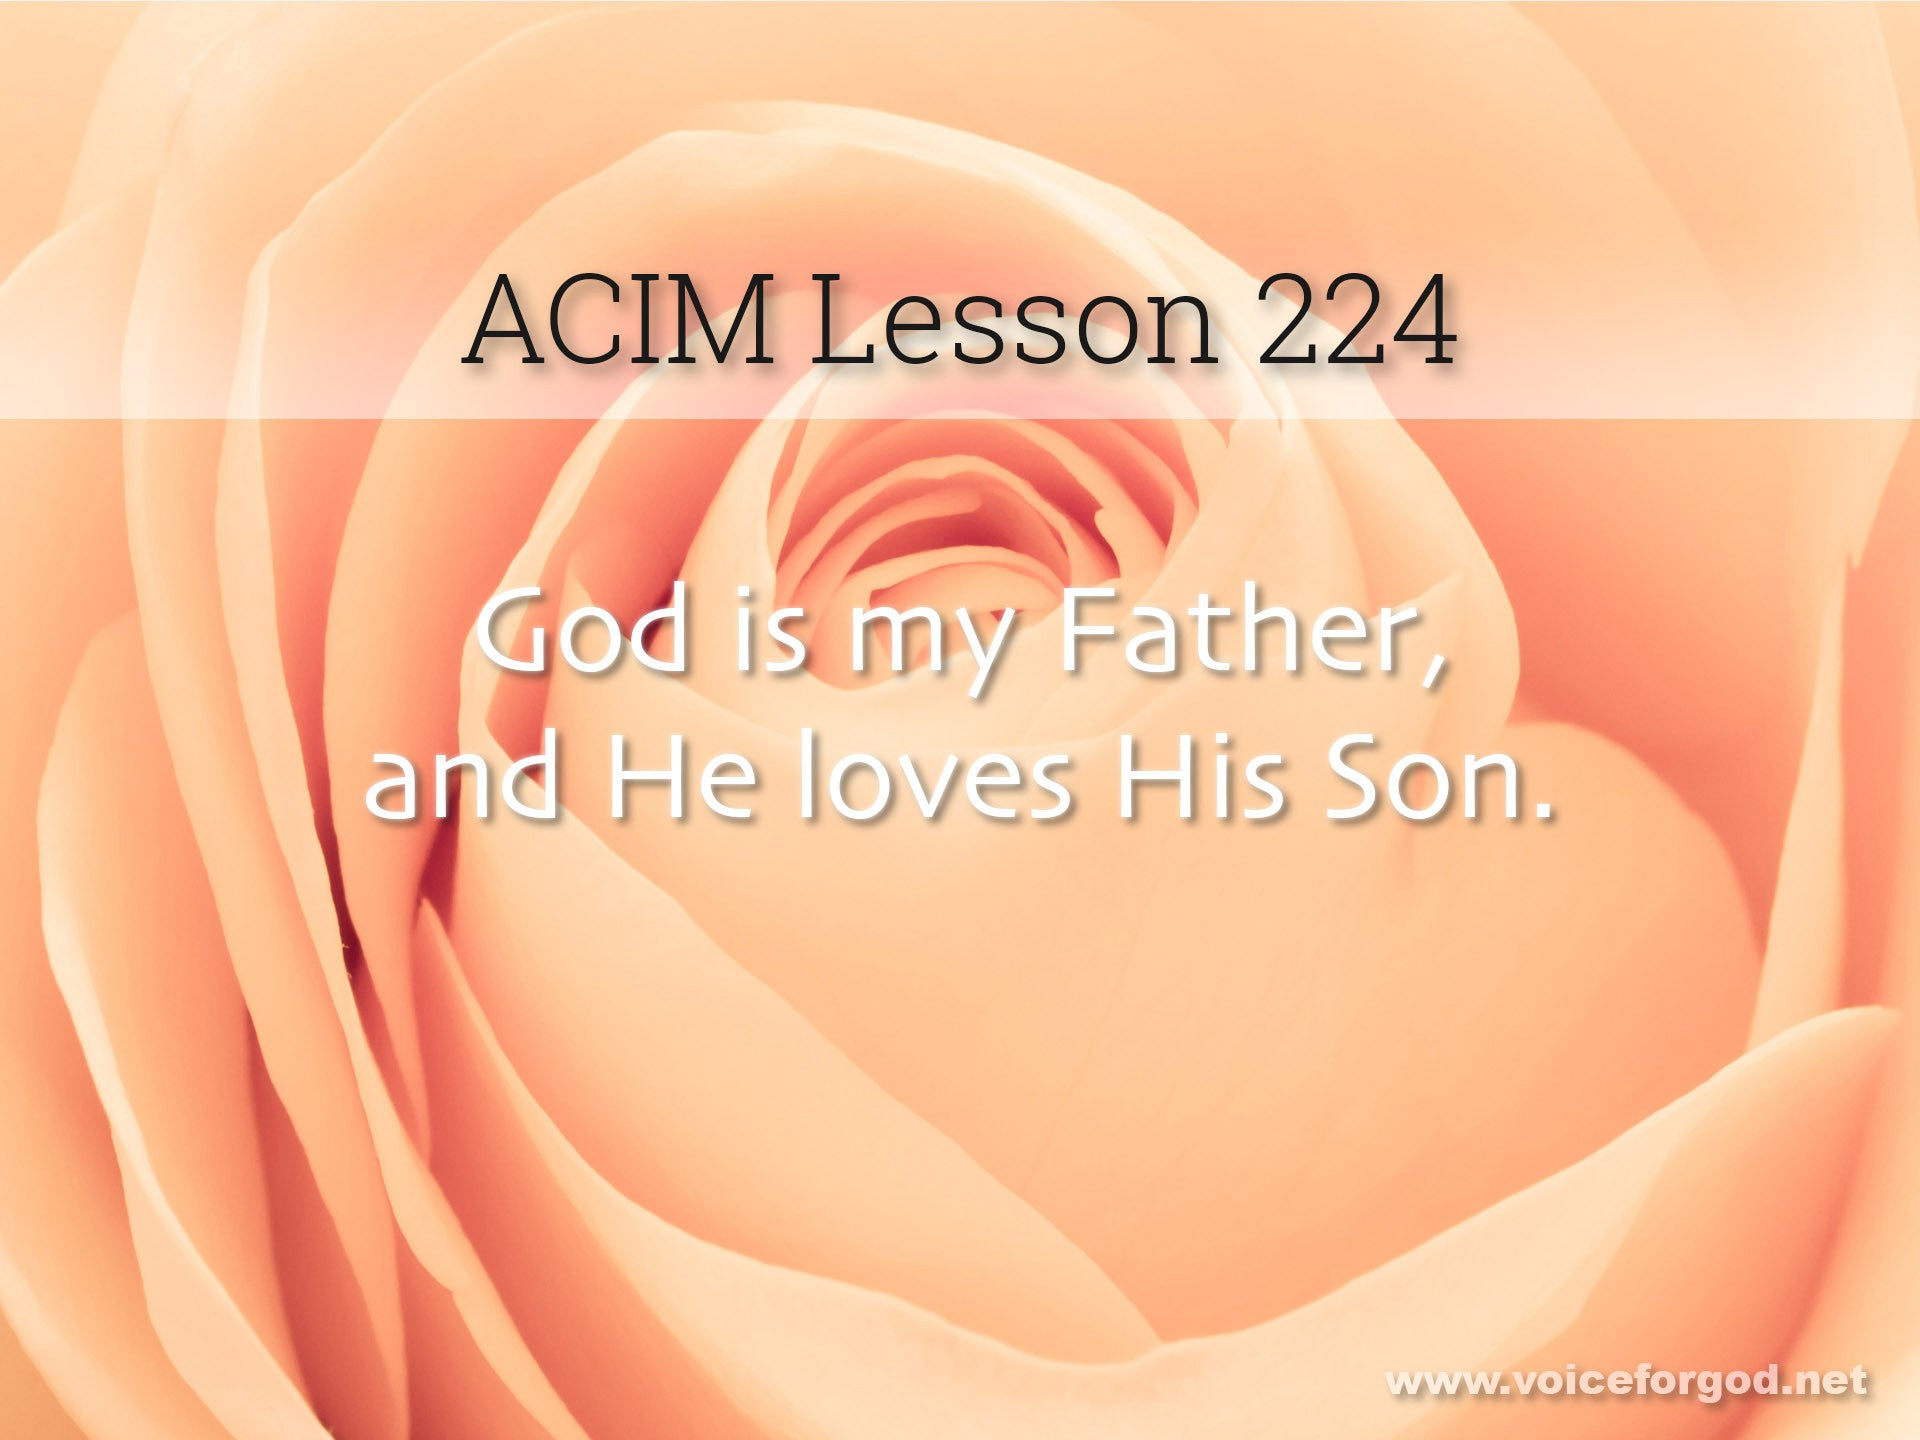 ACIM Lesson 224 - A Course in Miracles Workbook Lesson 224